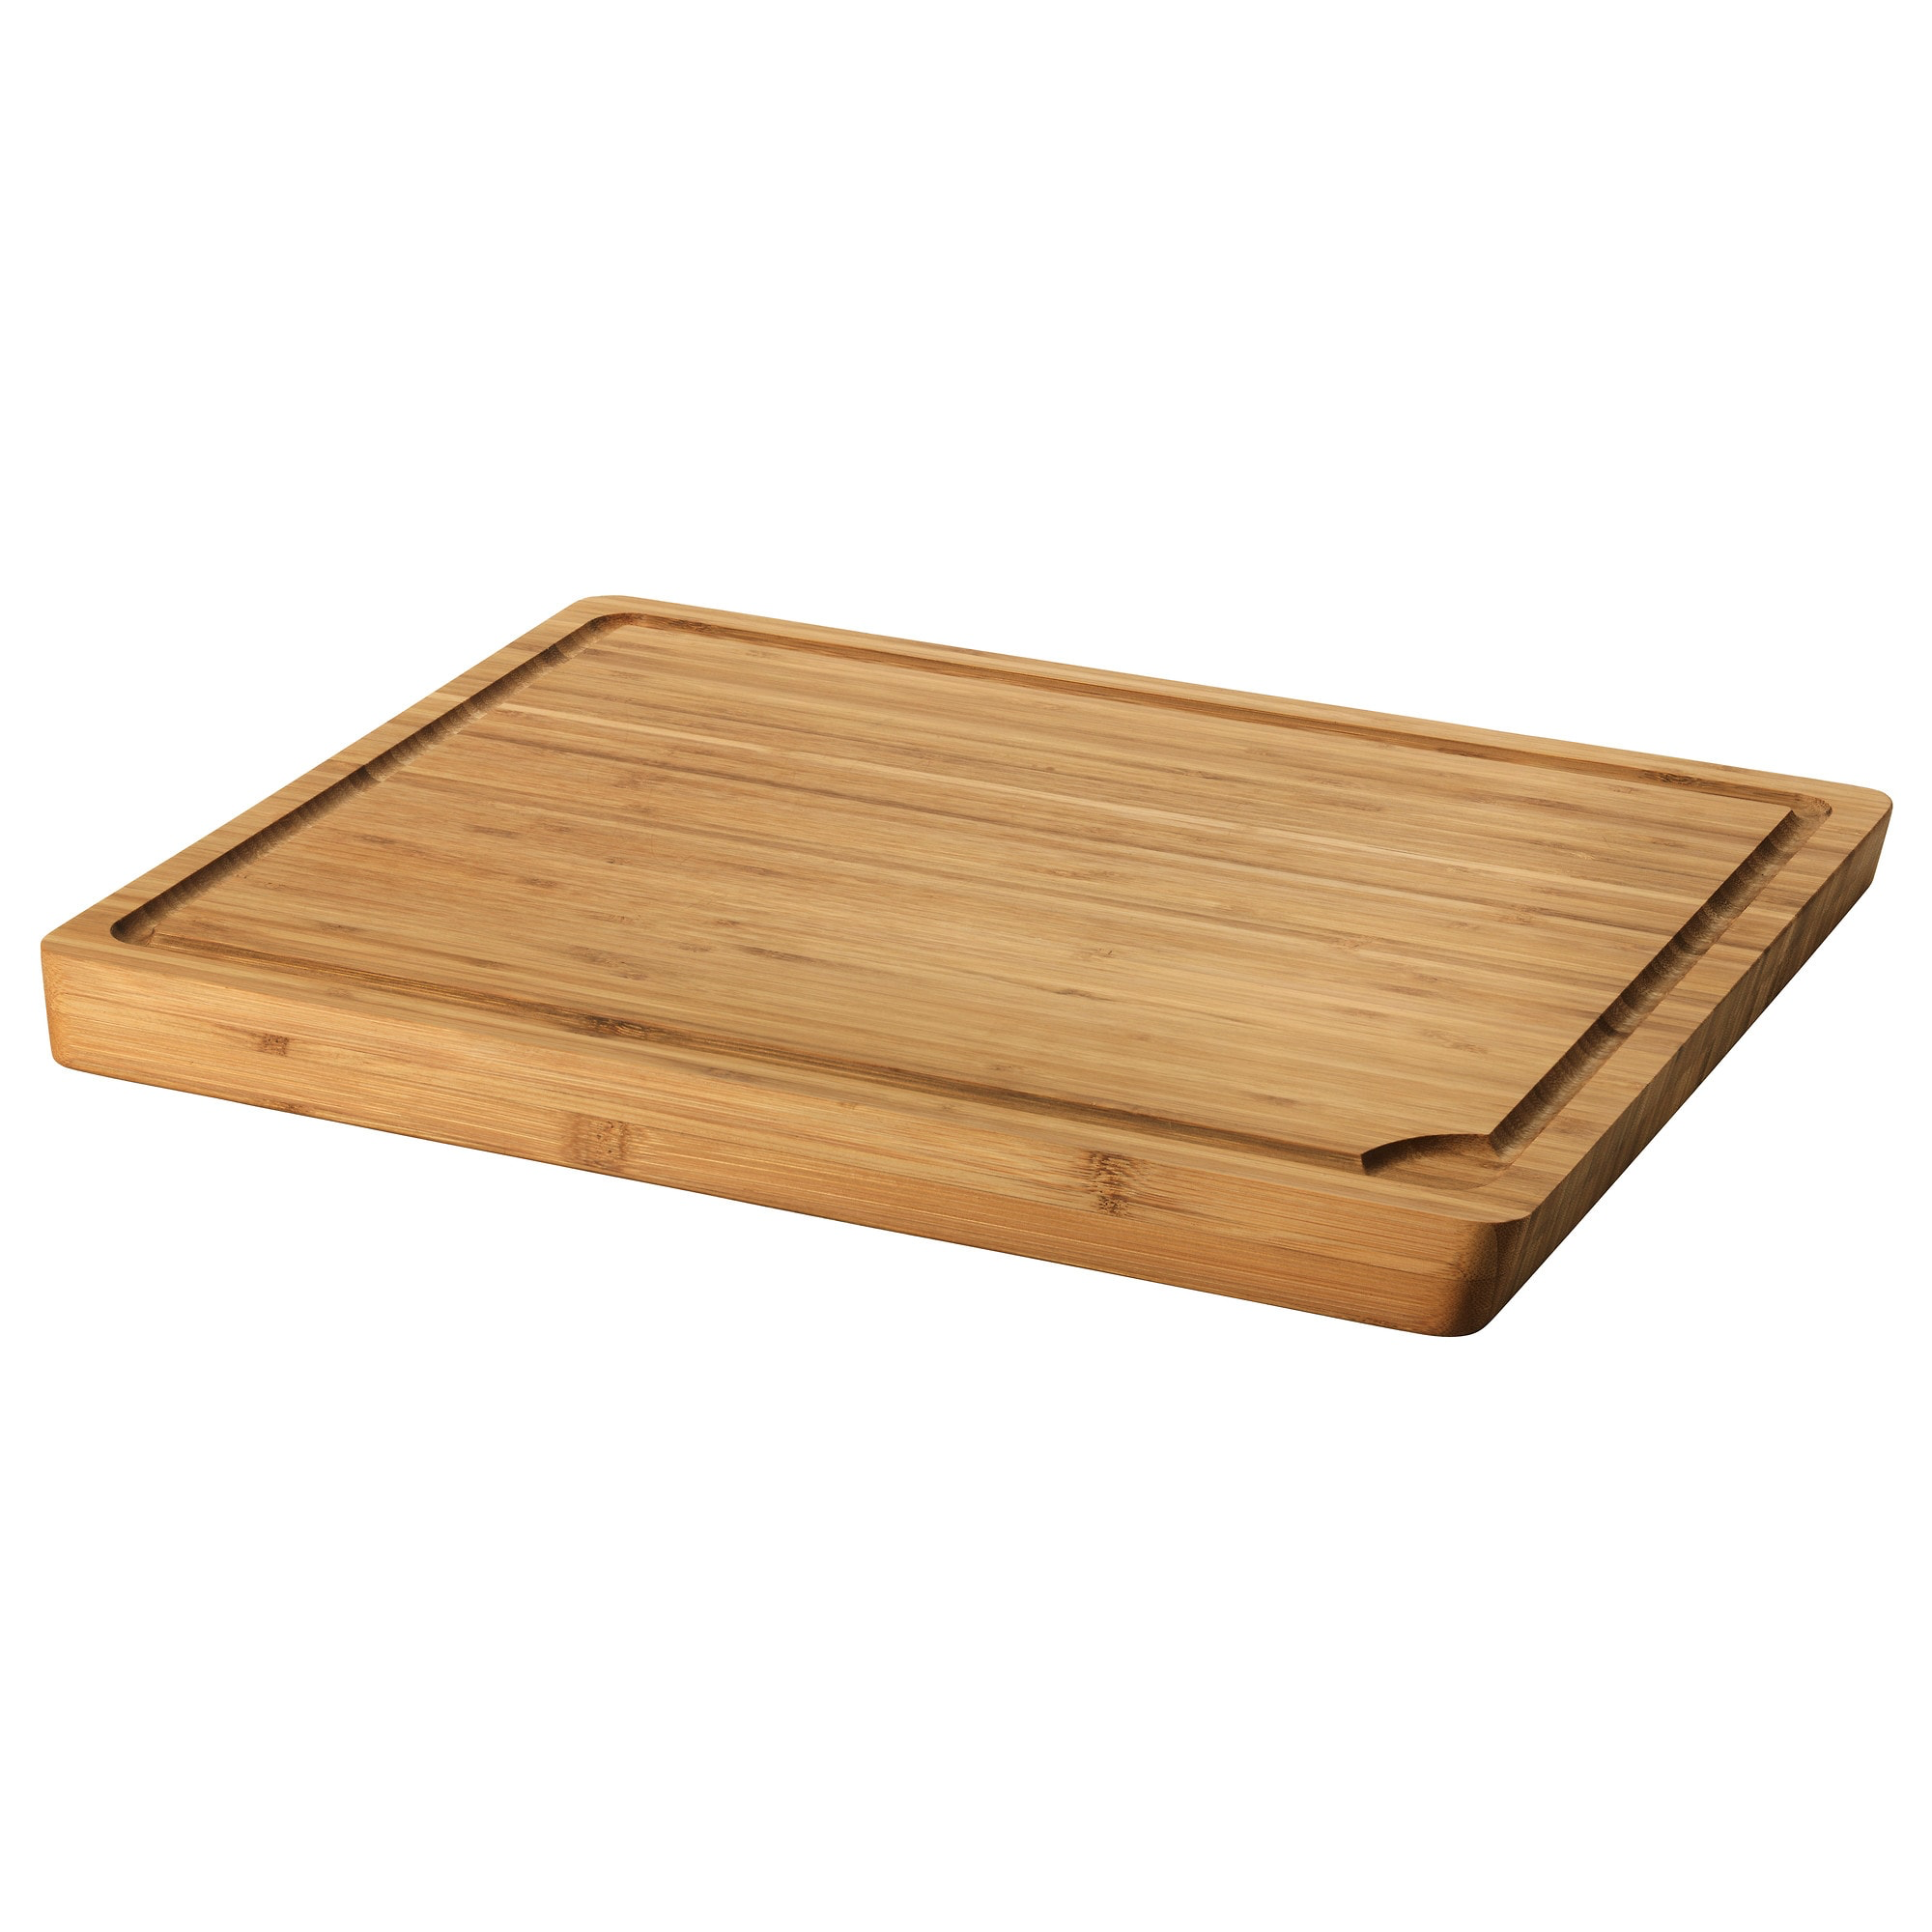 APTITLIG Bamboo Butcher Block